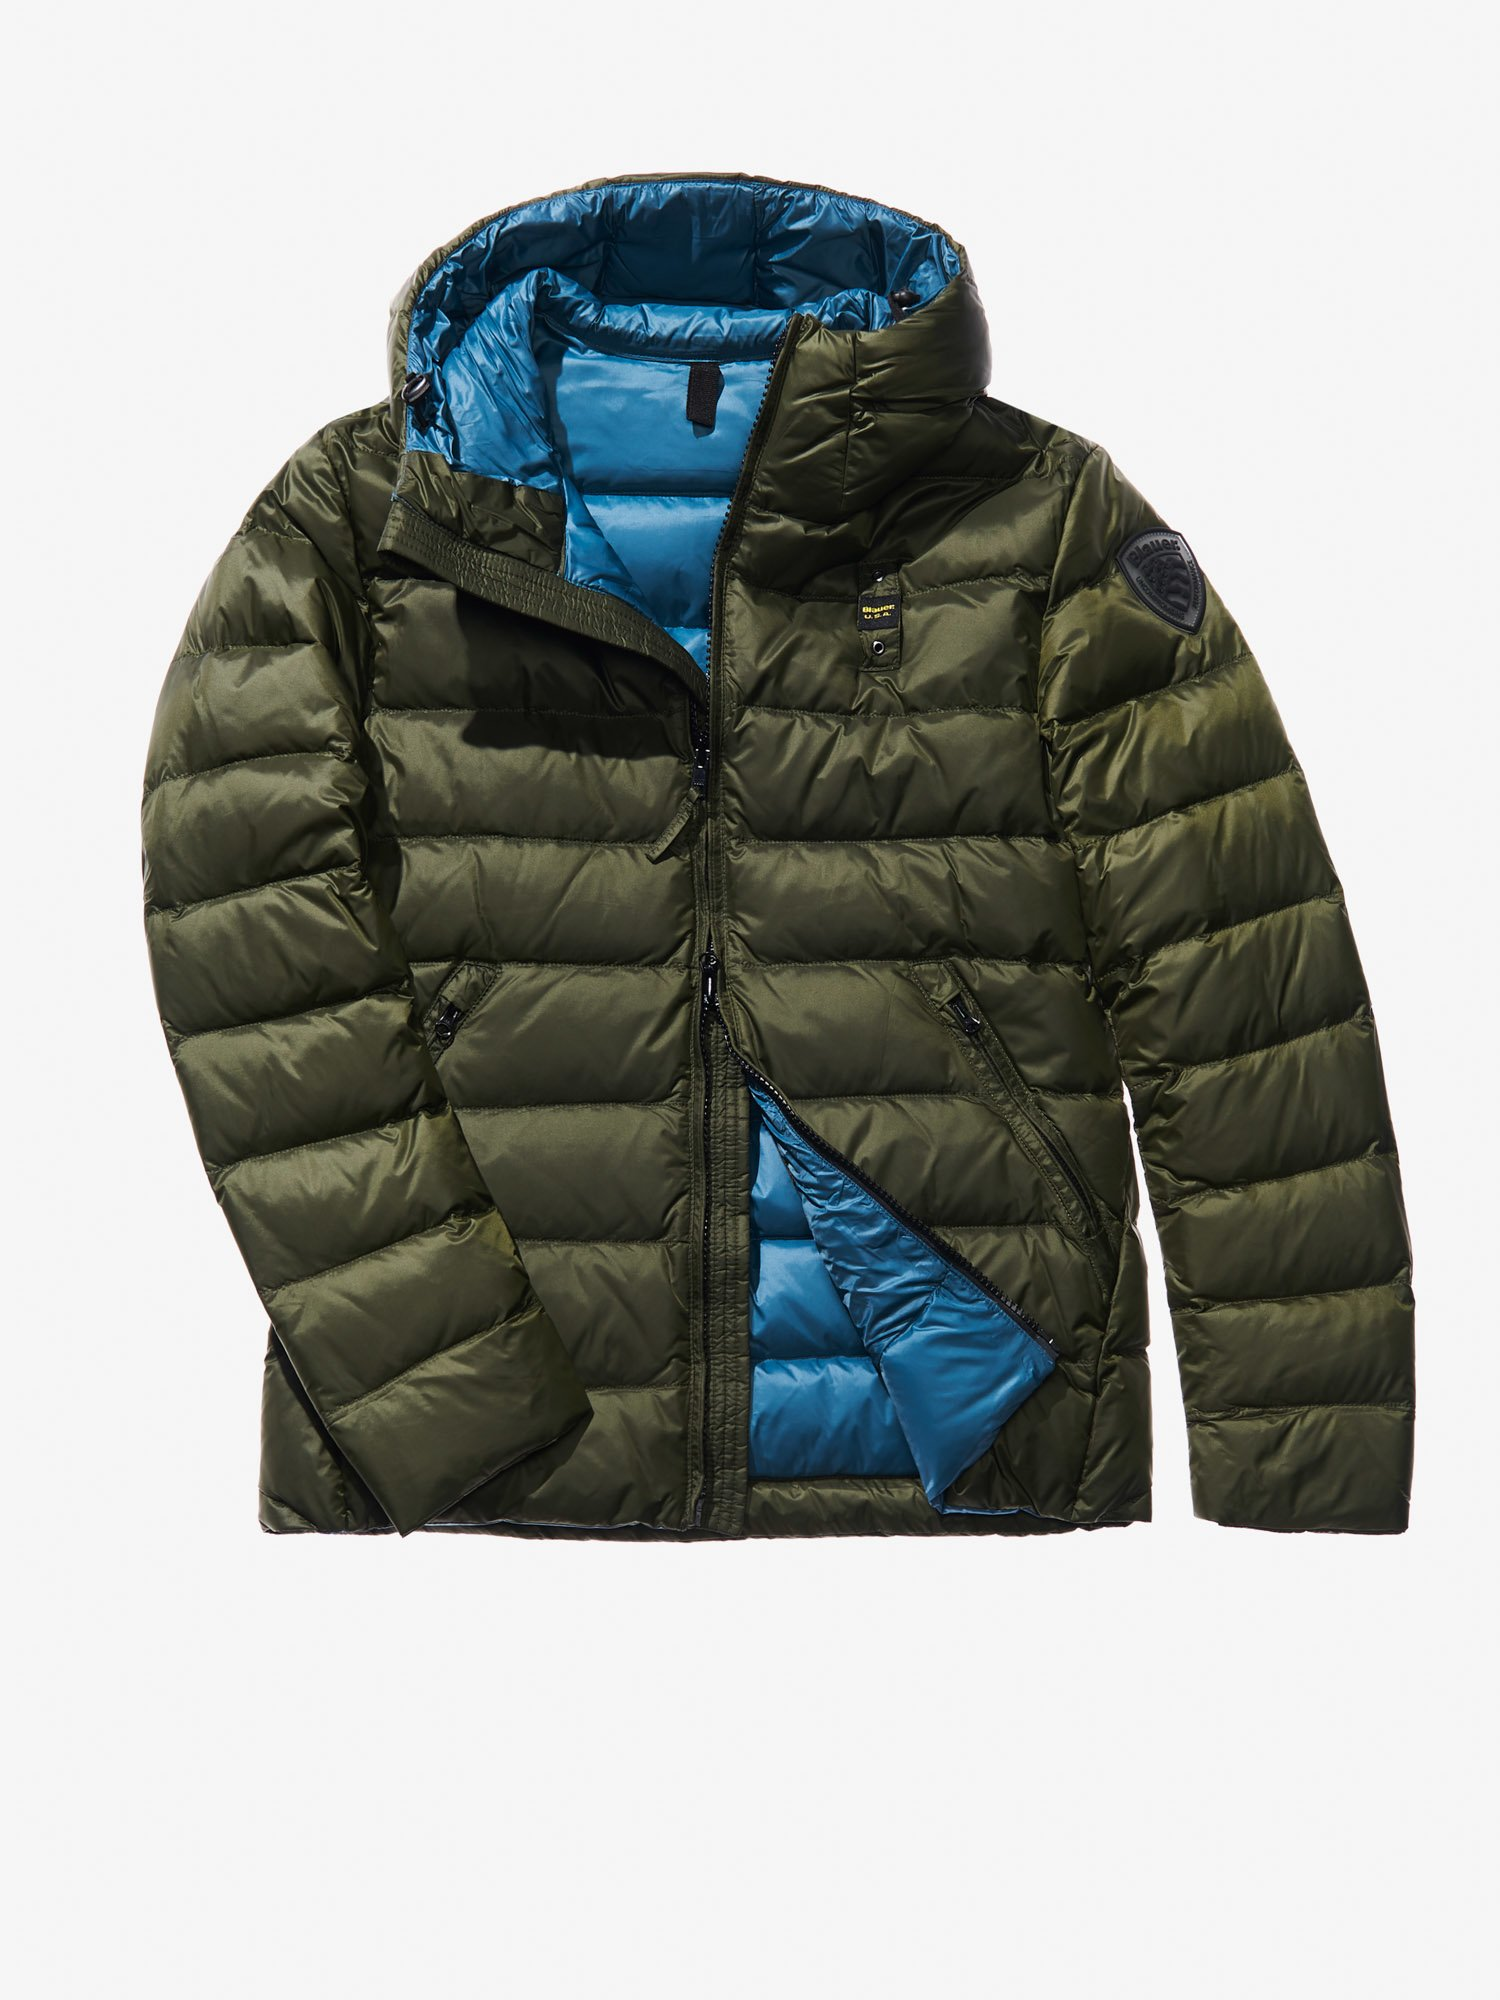 Blauer - RICCARDO ULTRA LIGHT DOWN JACKET WITH ATTACHED HOOD - Alga Kombu Inside Green Hydro - Blauer